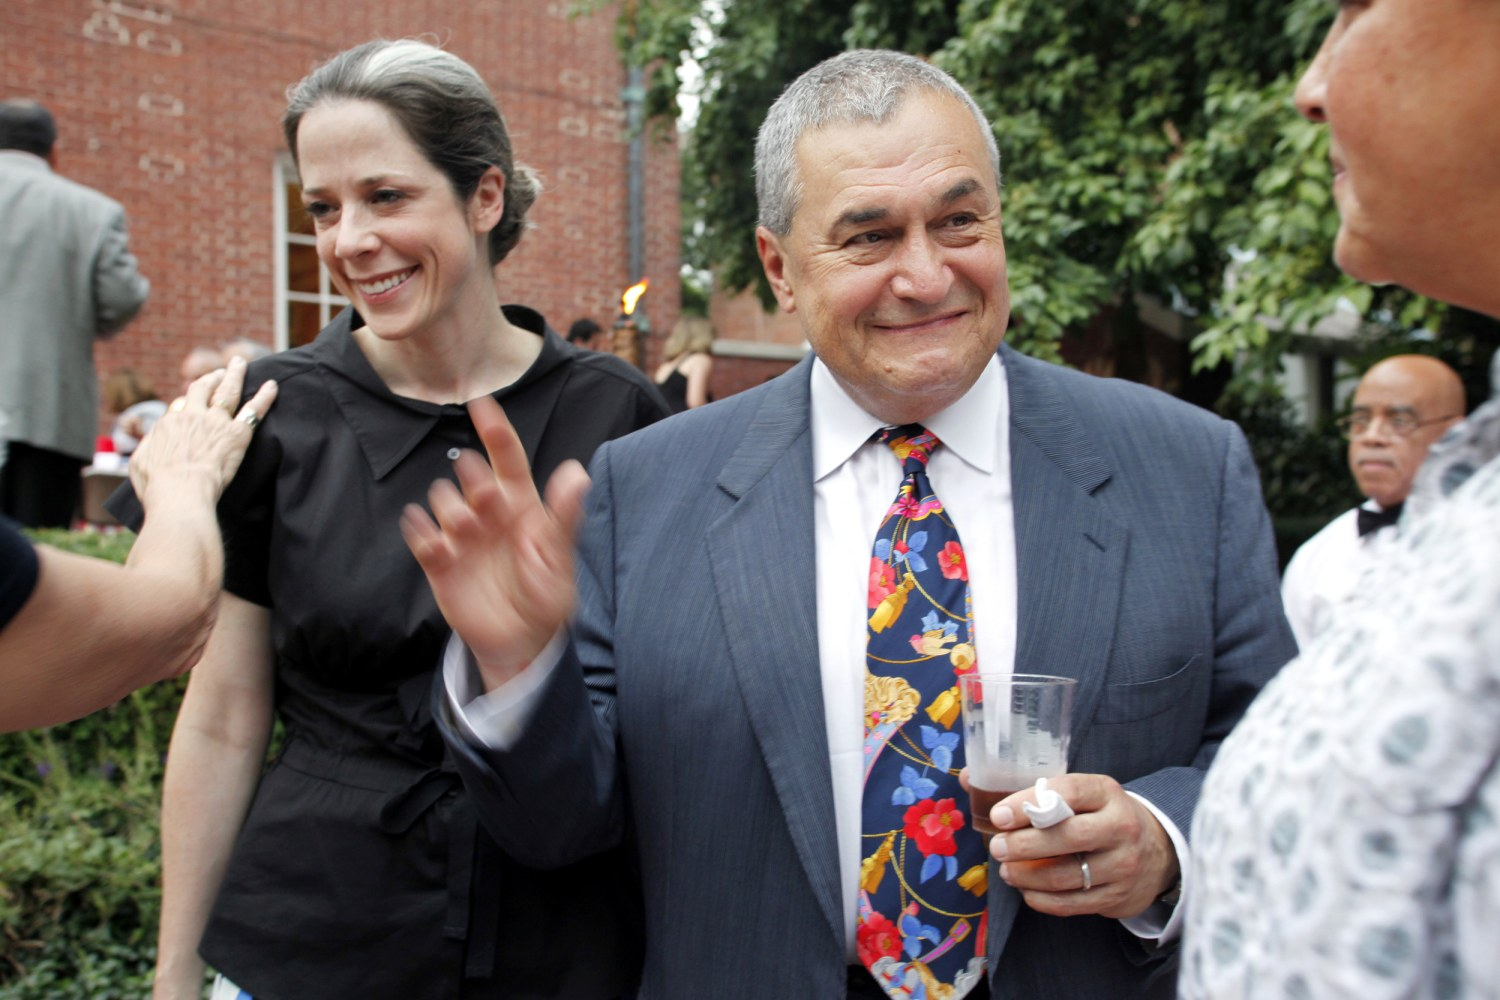 Tony Podesta Steps Down from Lobbying Firm Amid Mueller Probe